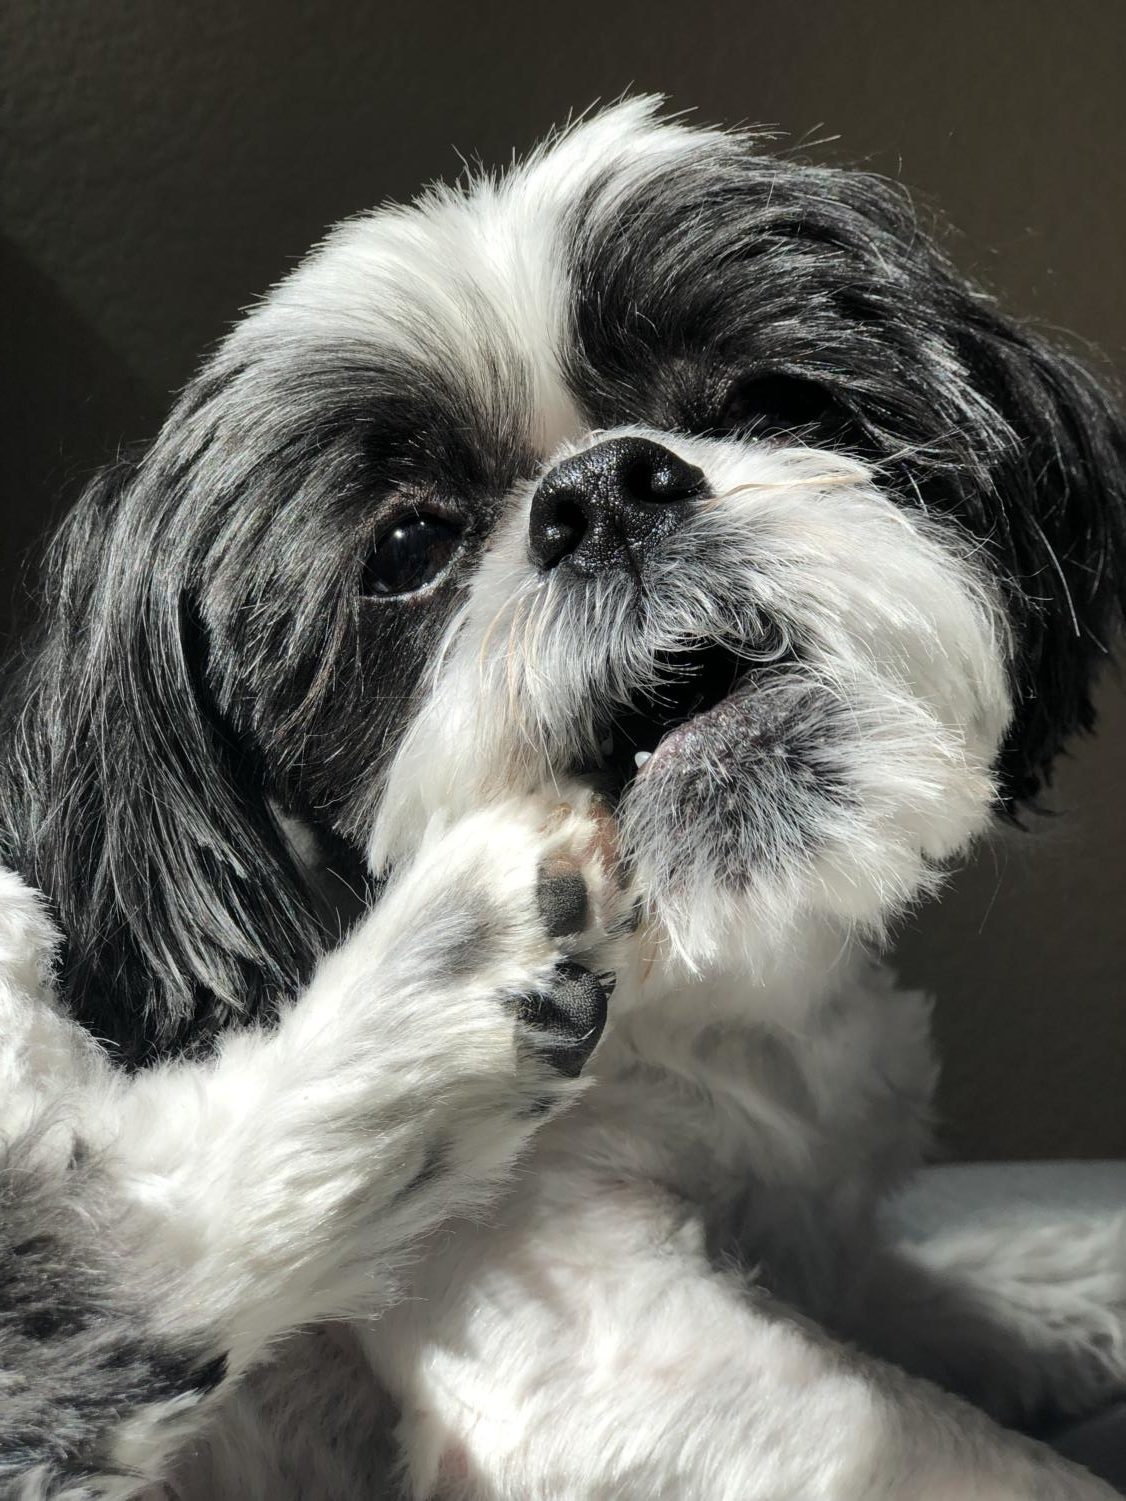 Junior Rosa Lee's seven year-old dog, Bo, bites his paw while posing during a photoshoot. Lee created an Instagram account dedicated to Bo as a way to become famous when she was in sixth grade.